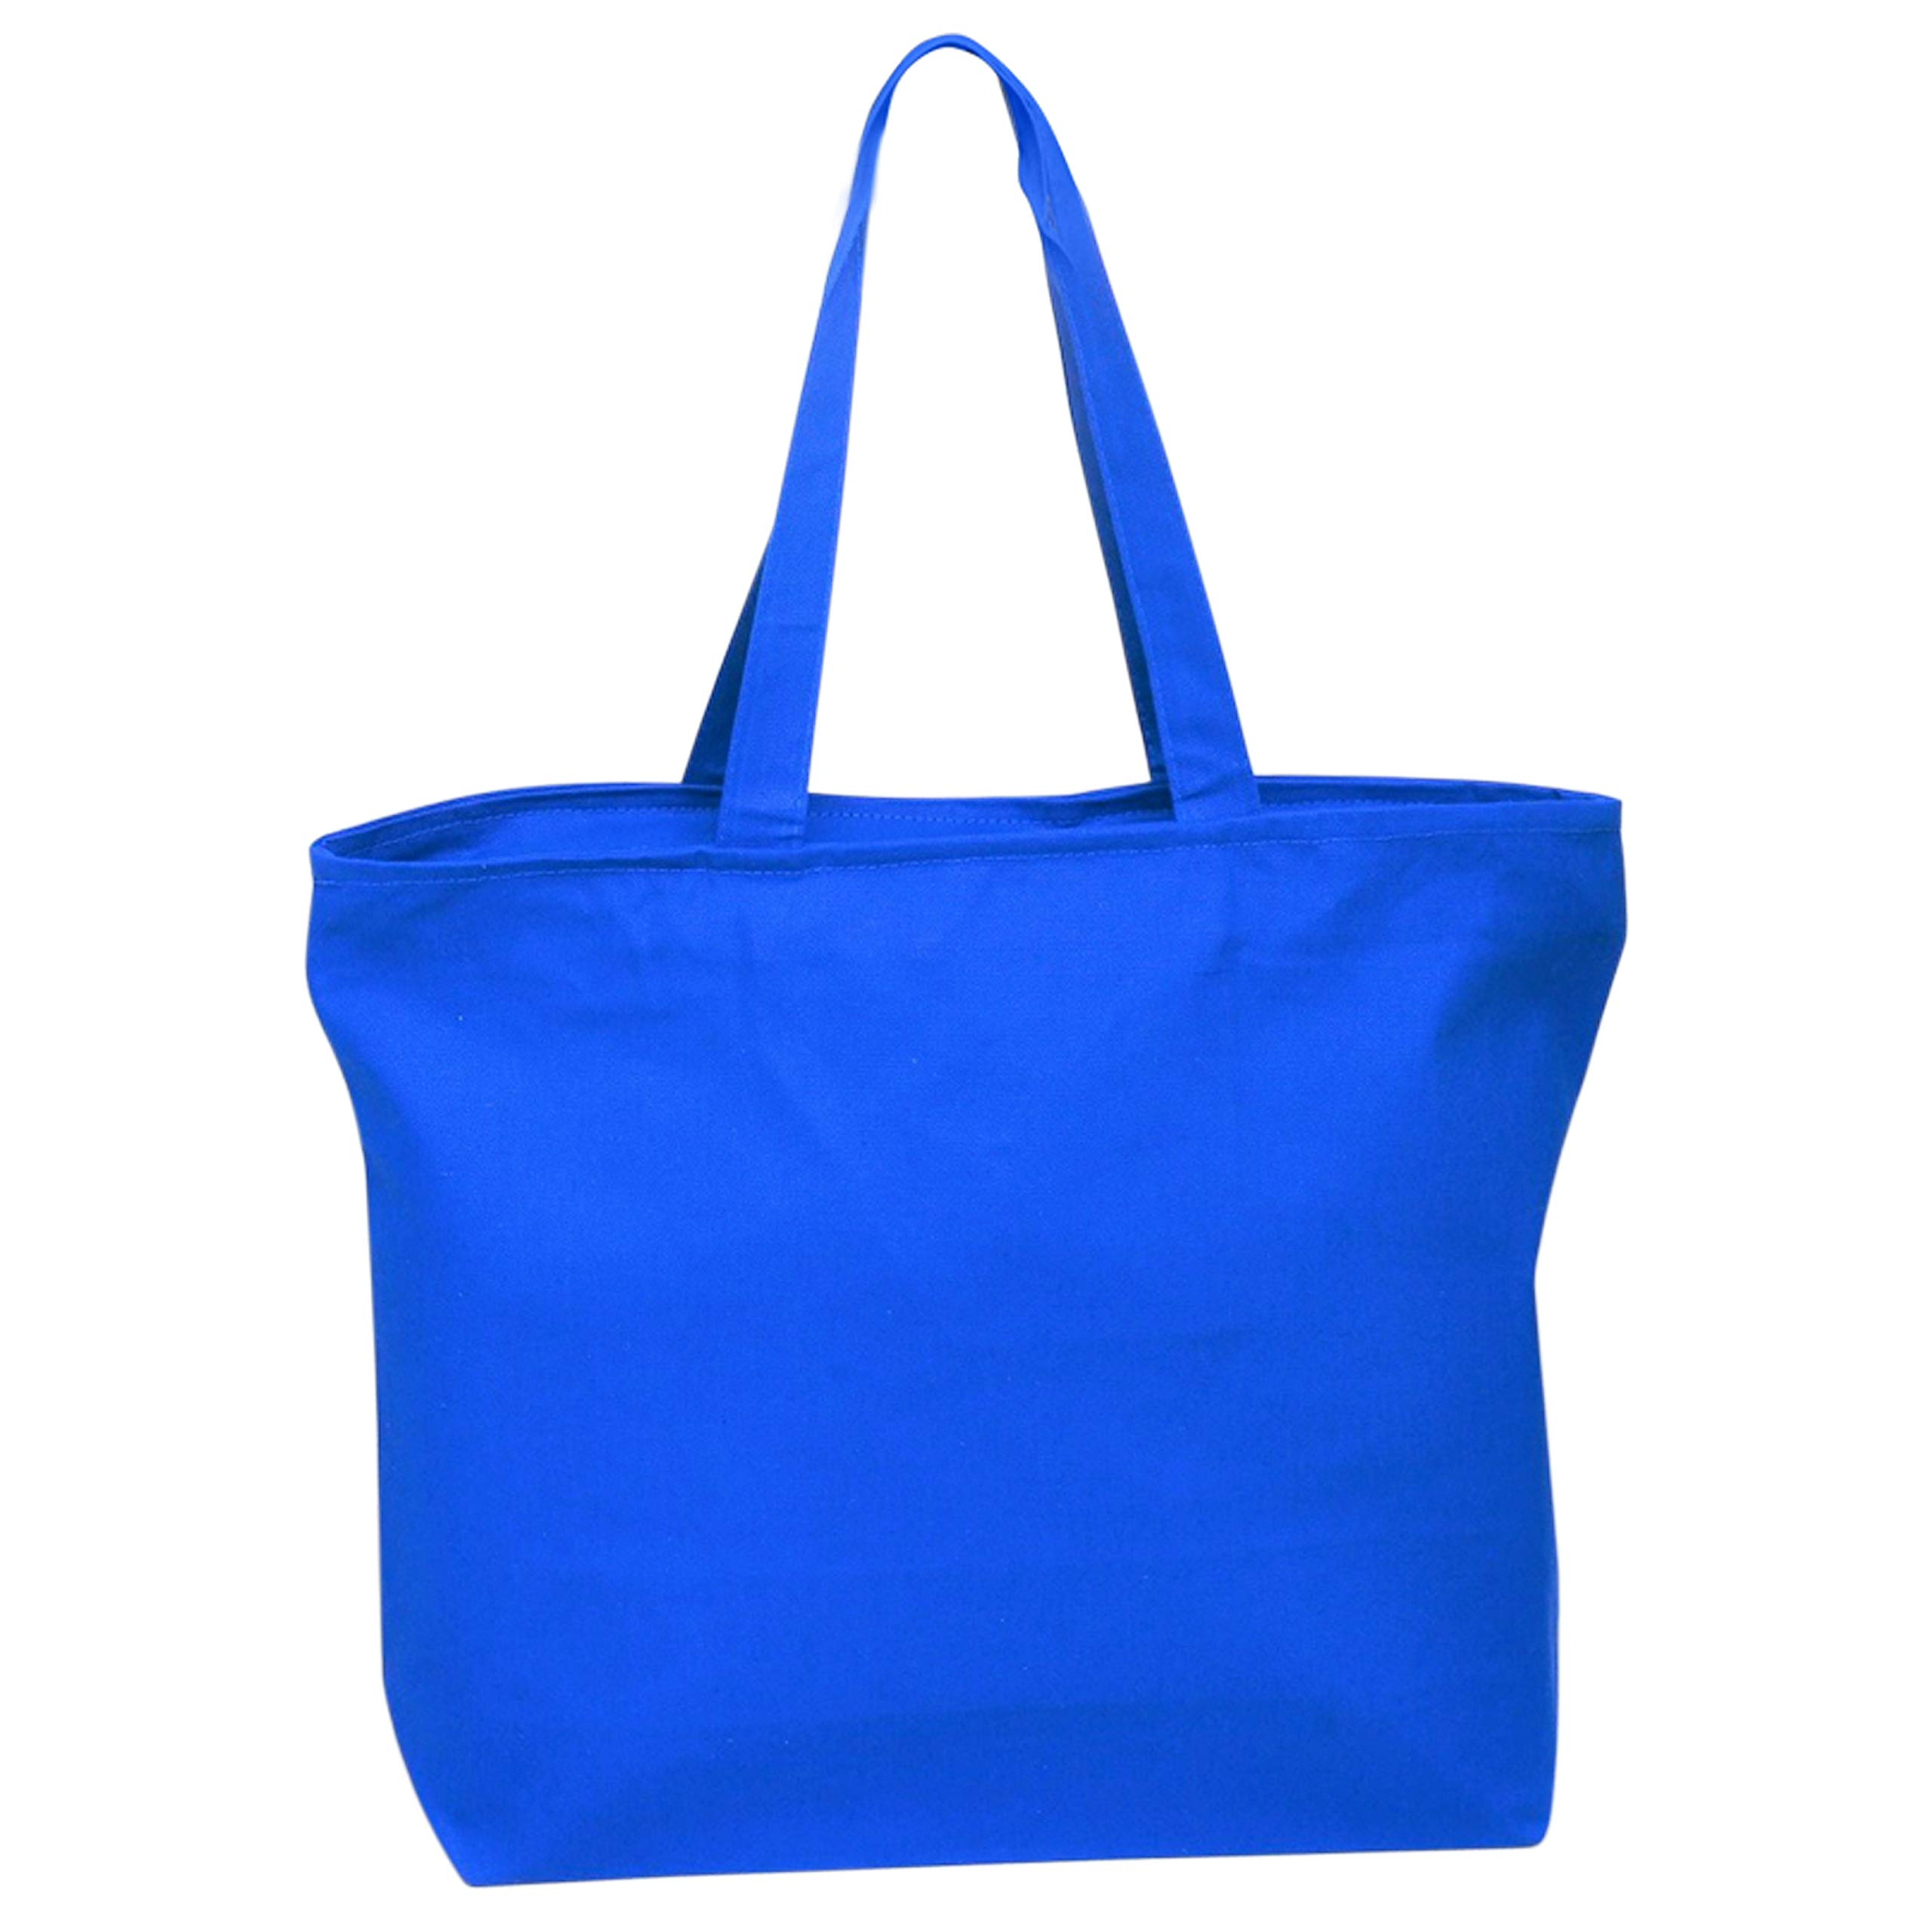 Heavy Canvas Large Tote Bag with Zippered Closure for Beach, Grocery Shopping, Travel by TBF Bags (Royal, 2)